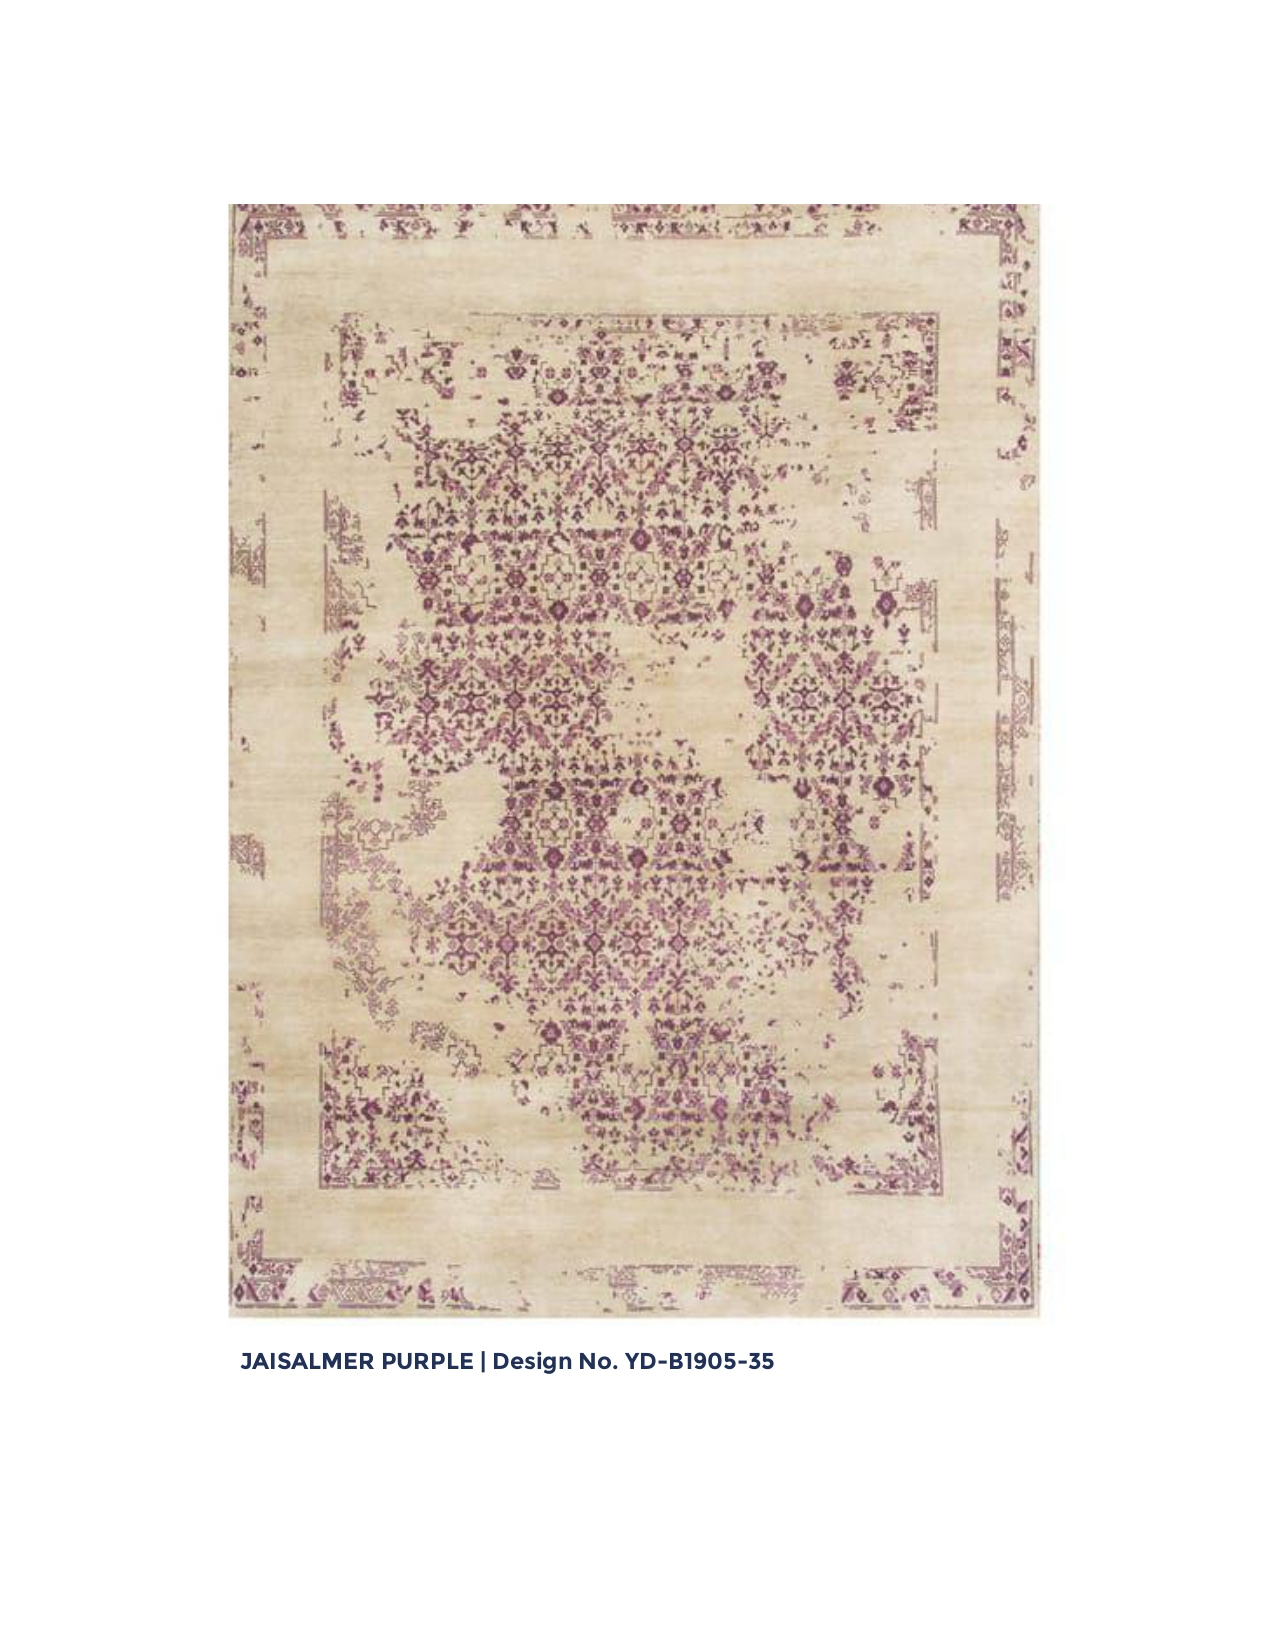 Hand_Knotted_CC_1905_44.jpg